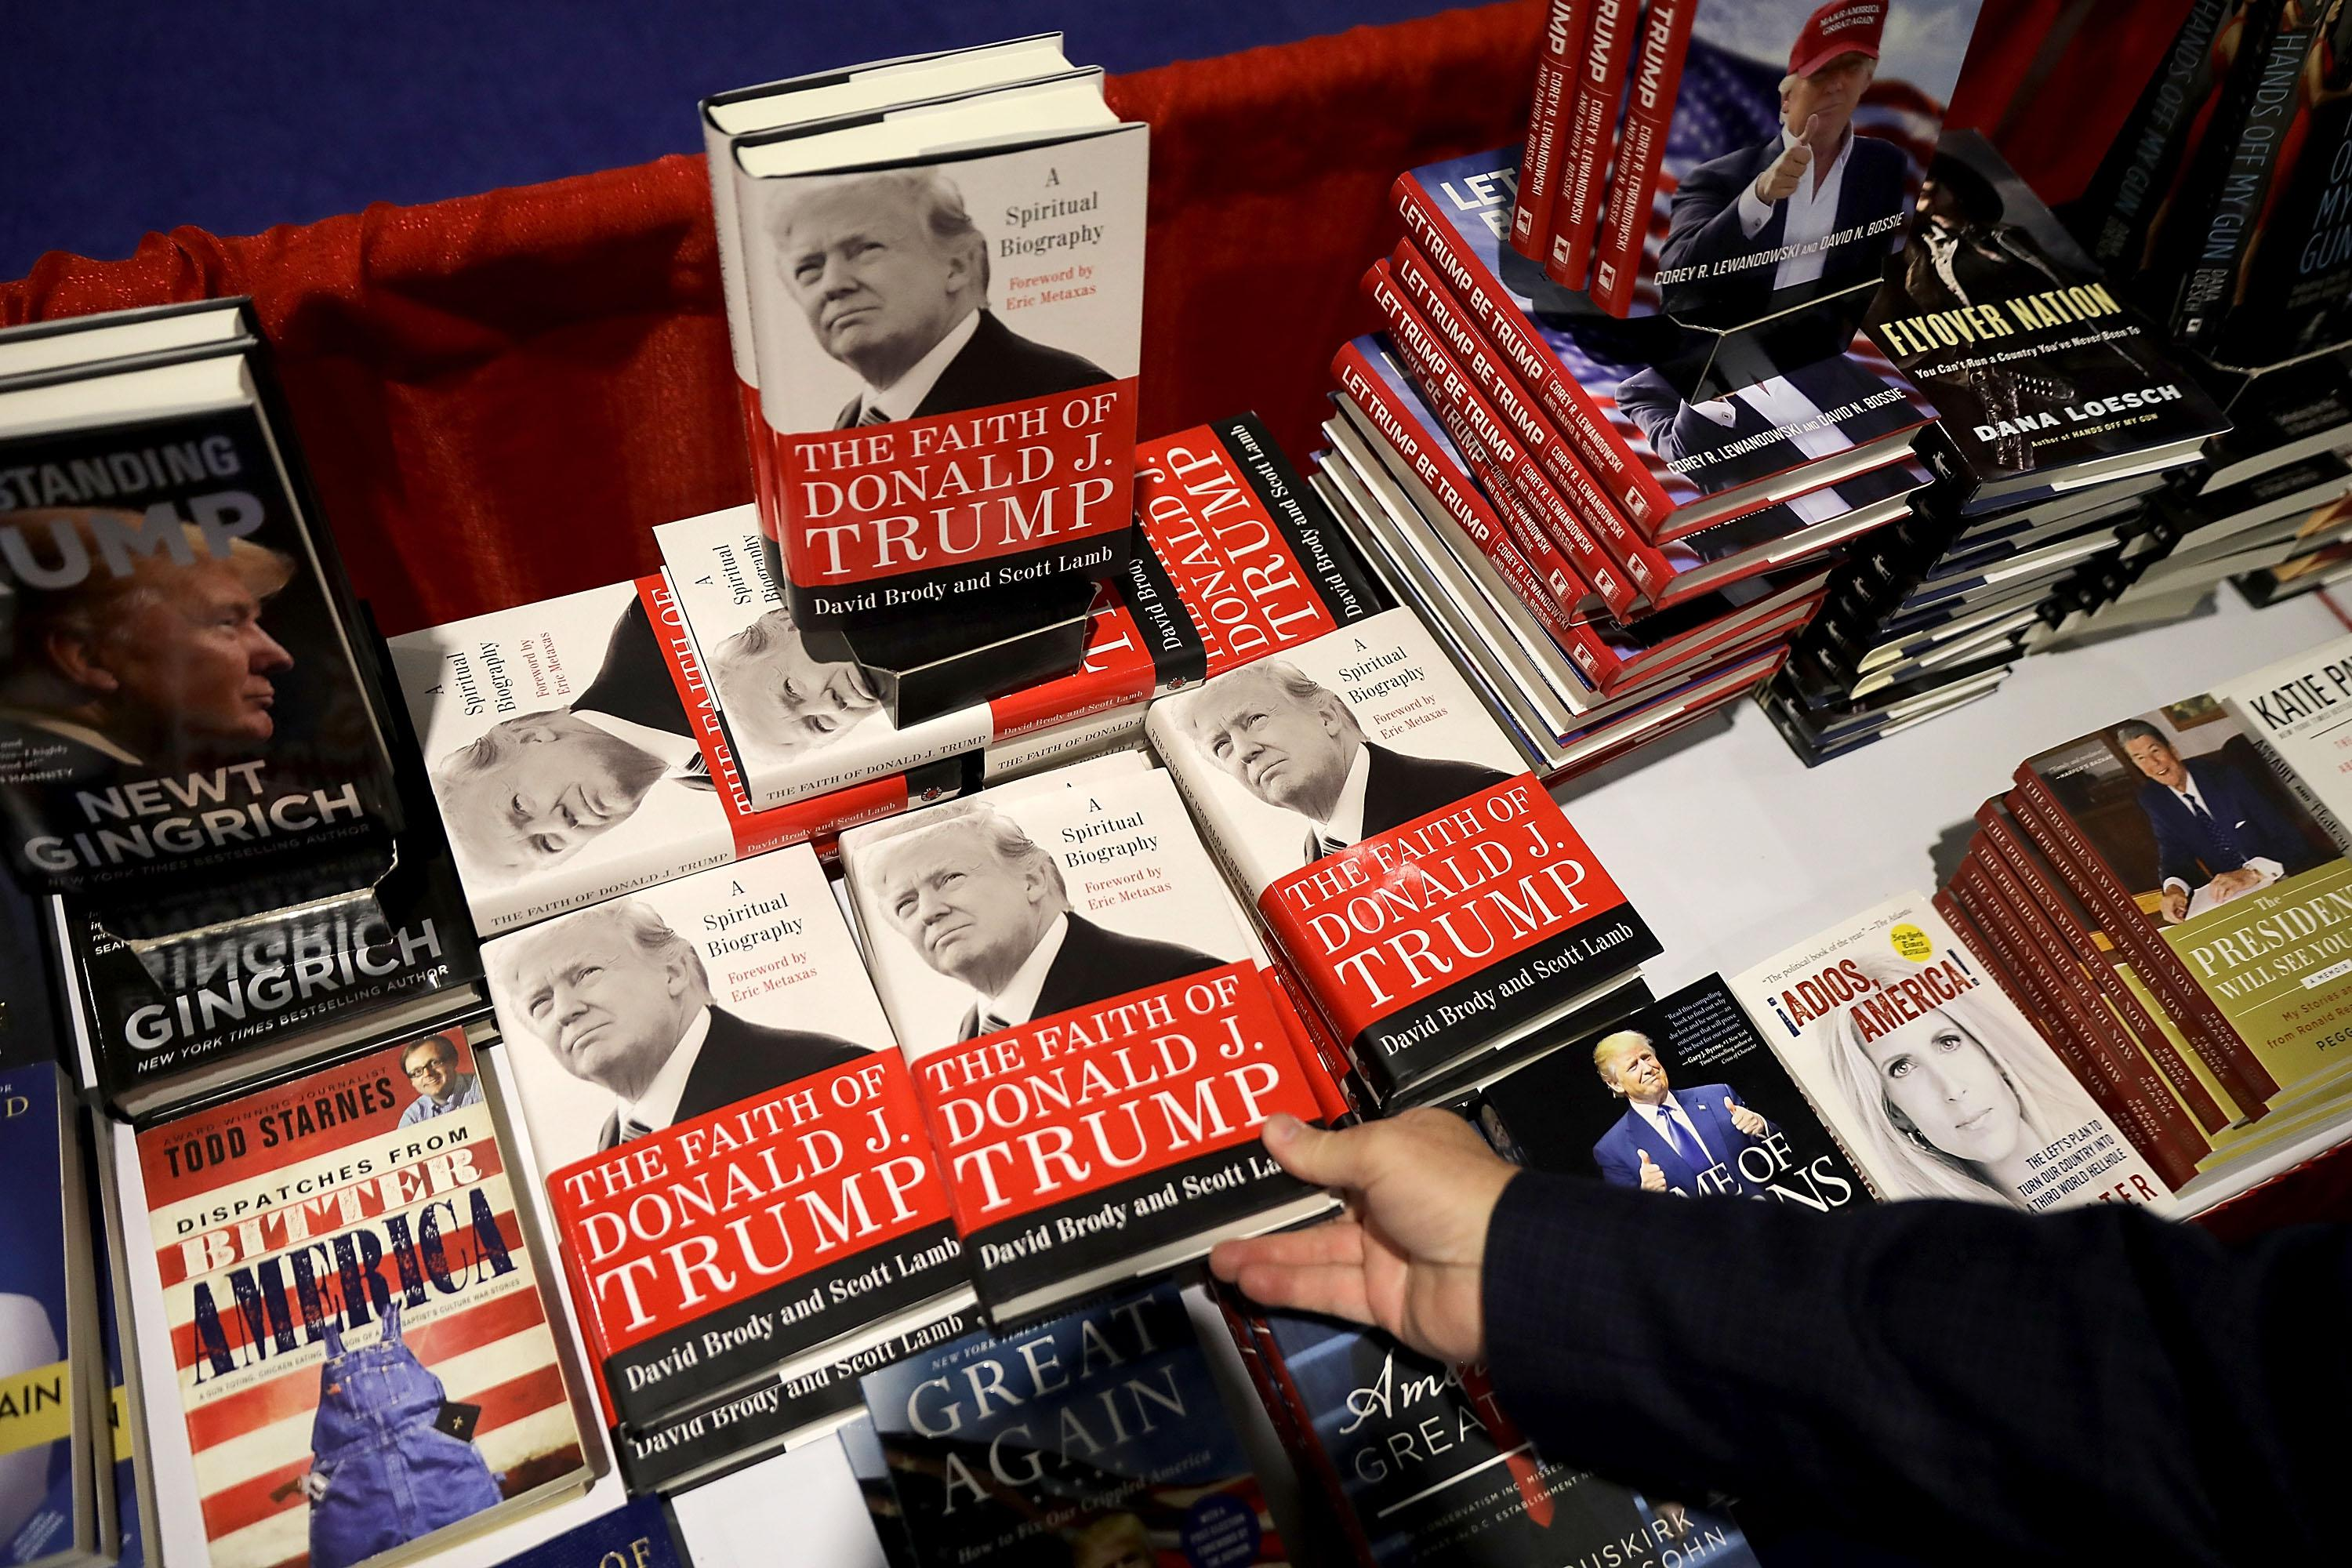 NATIONAL HARBOR, MD - FEBRUARY 23:  Books about Donald Trump and other right wing subjects are for sale inside the Conservative Political Action Conference Hub at the Gaylord National Resort and Convention Center February 23, 2018 in National Harbor, Maryland. Earlier in the day U.S. President Donald Trump addressed CPAC, the largest annual gathering of conservatives in the nation.  (Photo by Chip Somodevilla/Getty Images)